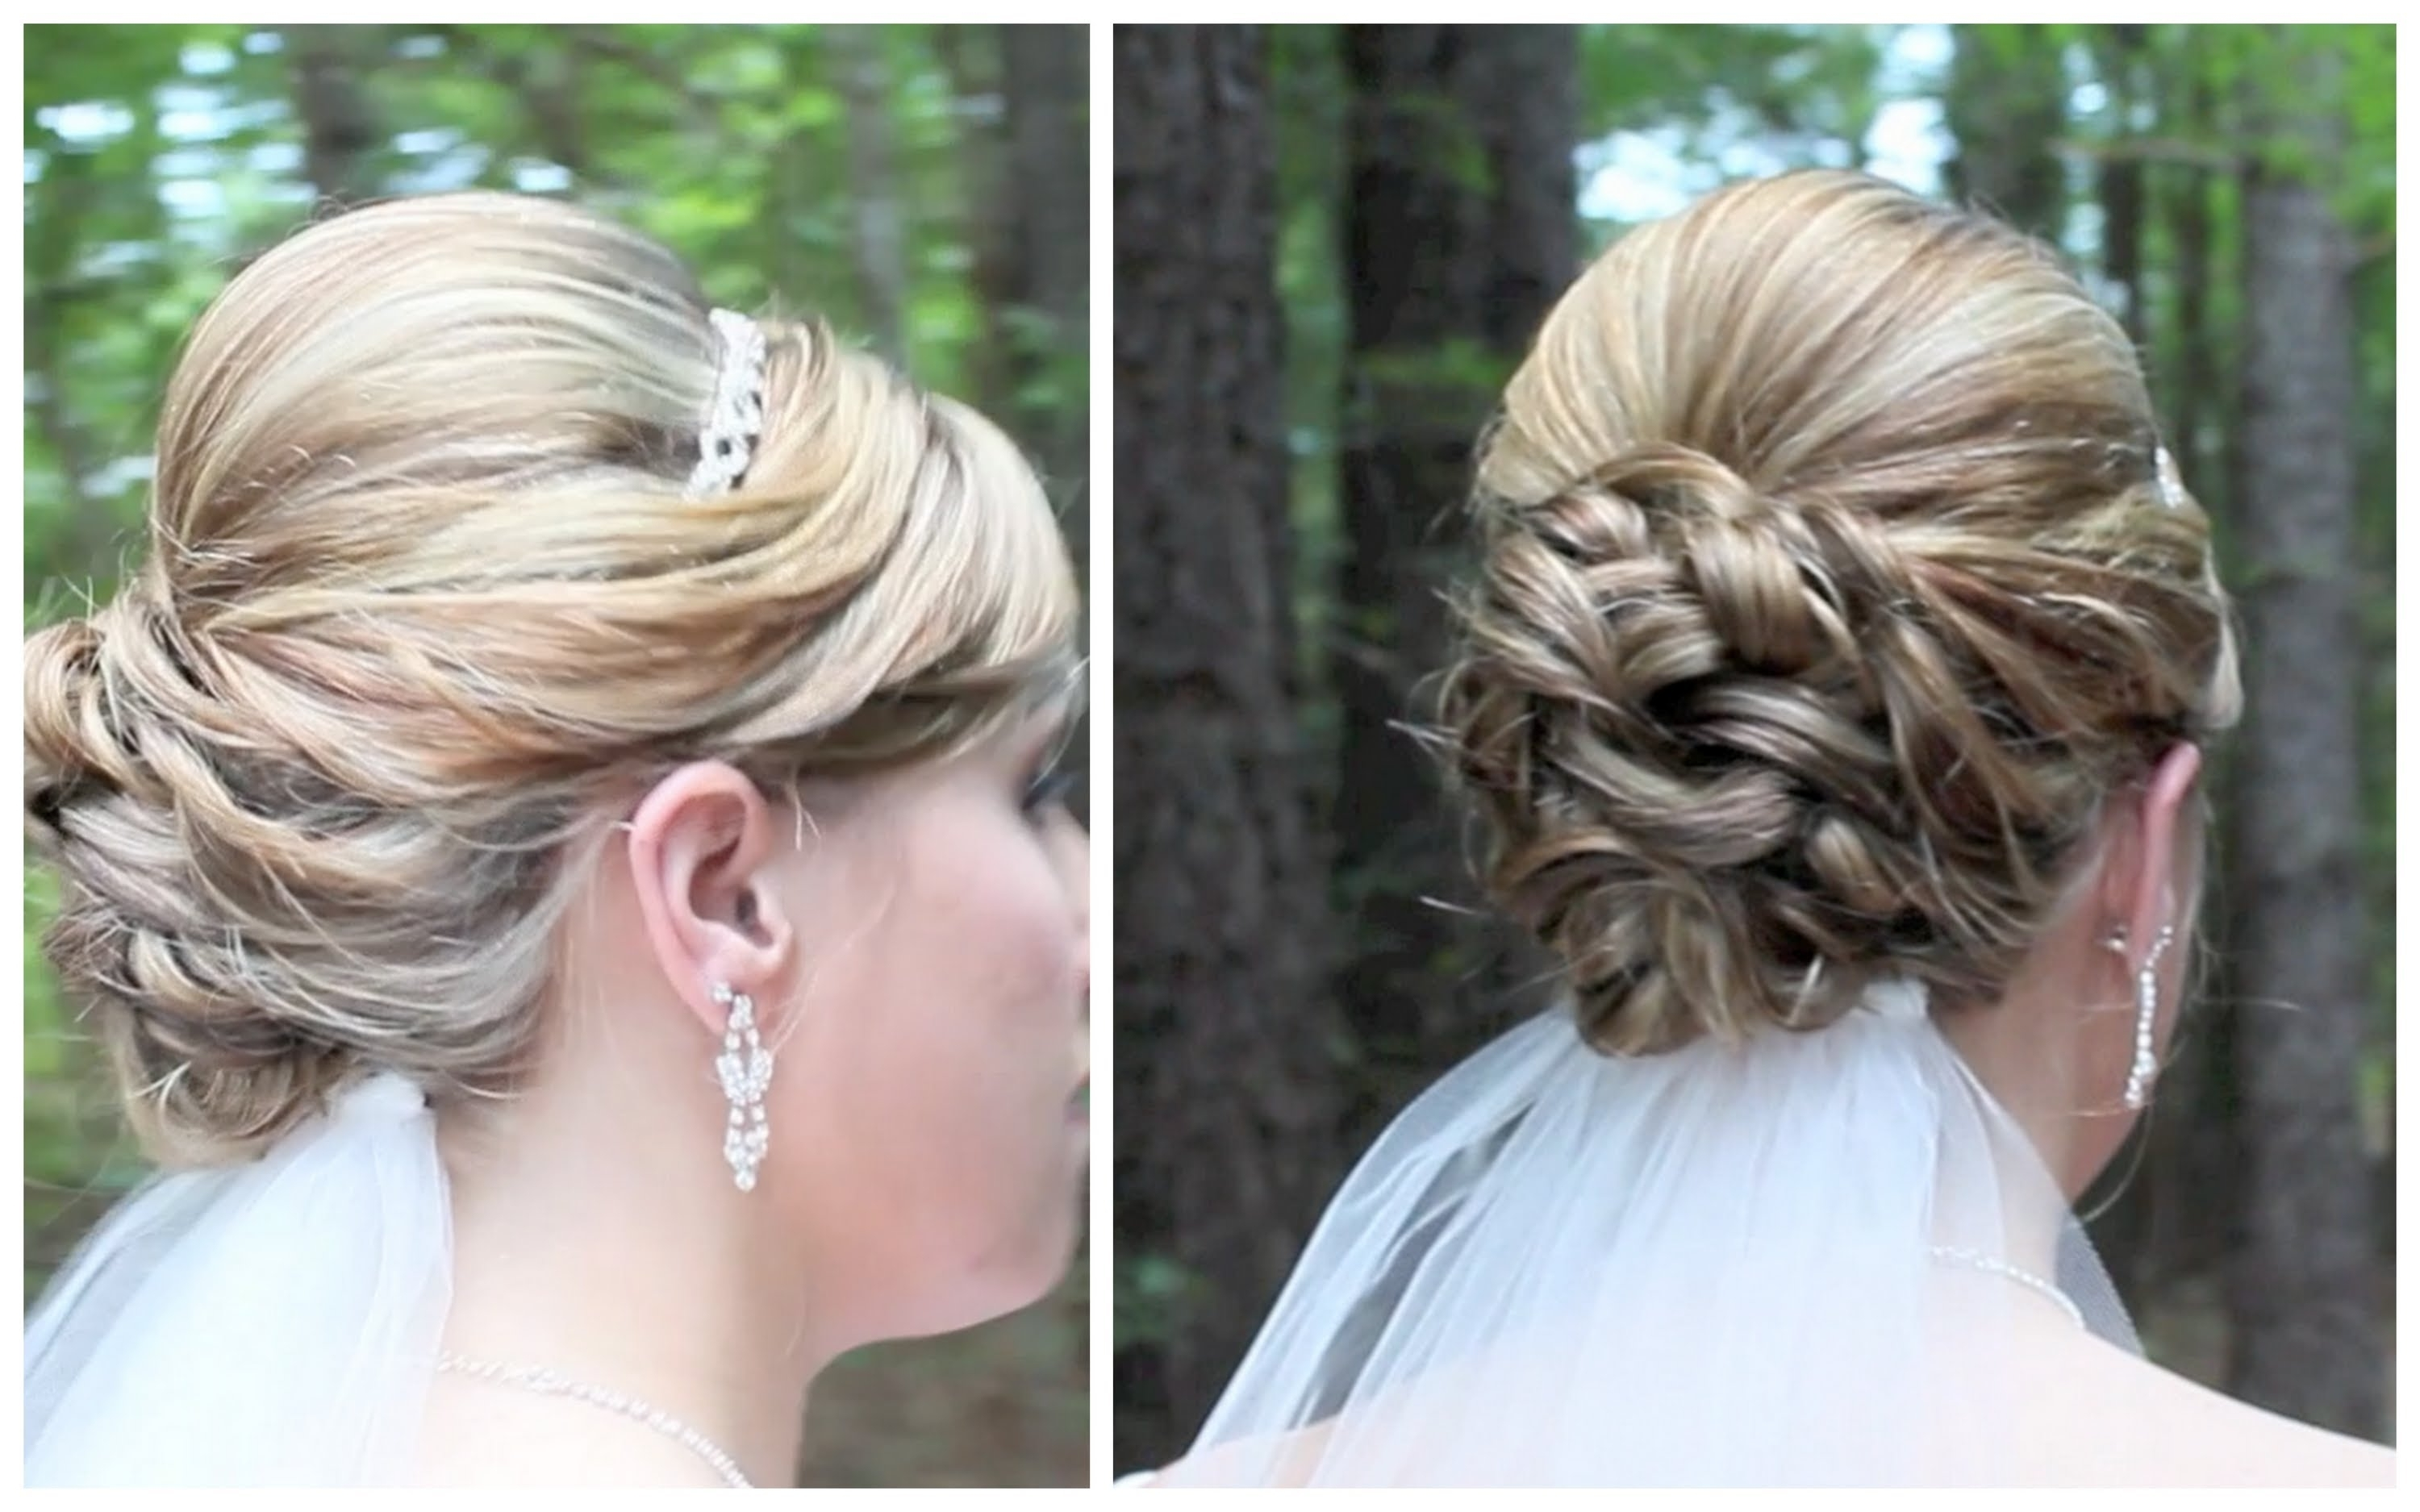 Well Known Put Up Wedding Hairstyles For Long Hair With Bridal Updo On Shoulder Length Hair – Youtube (View 4 of 15)